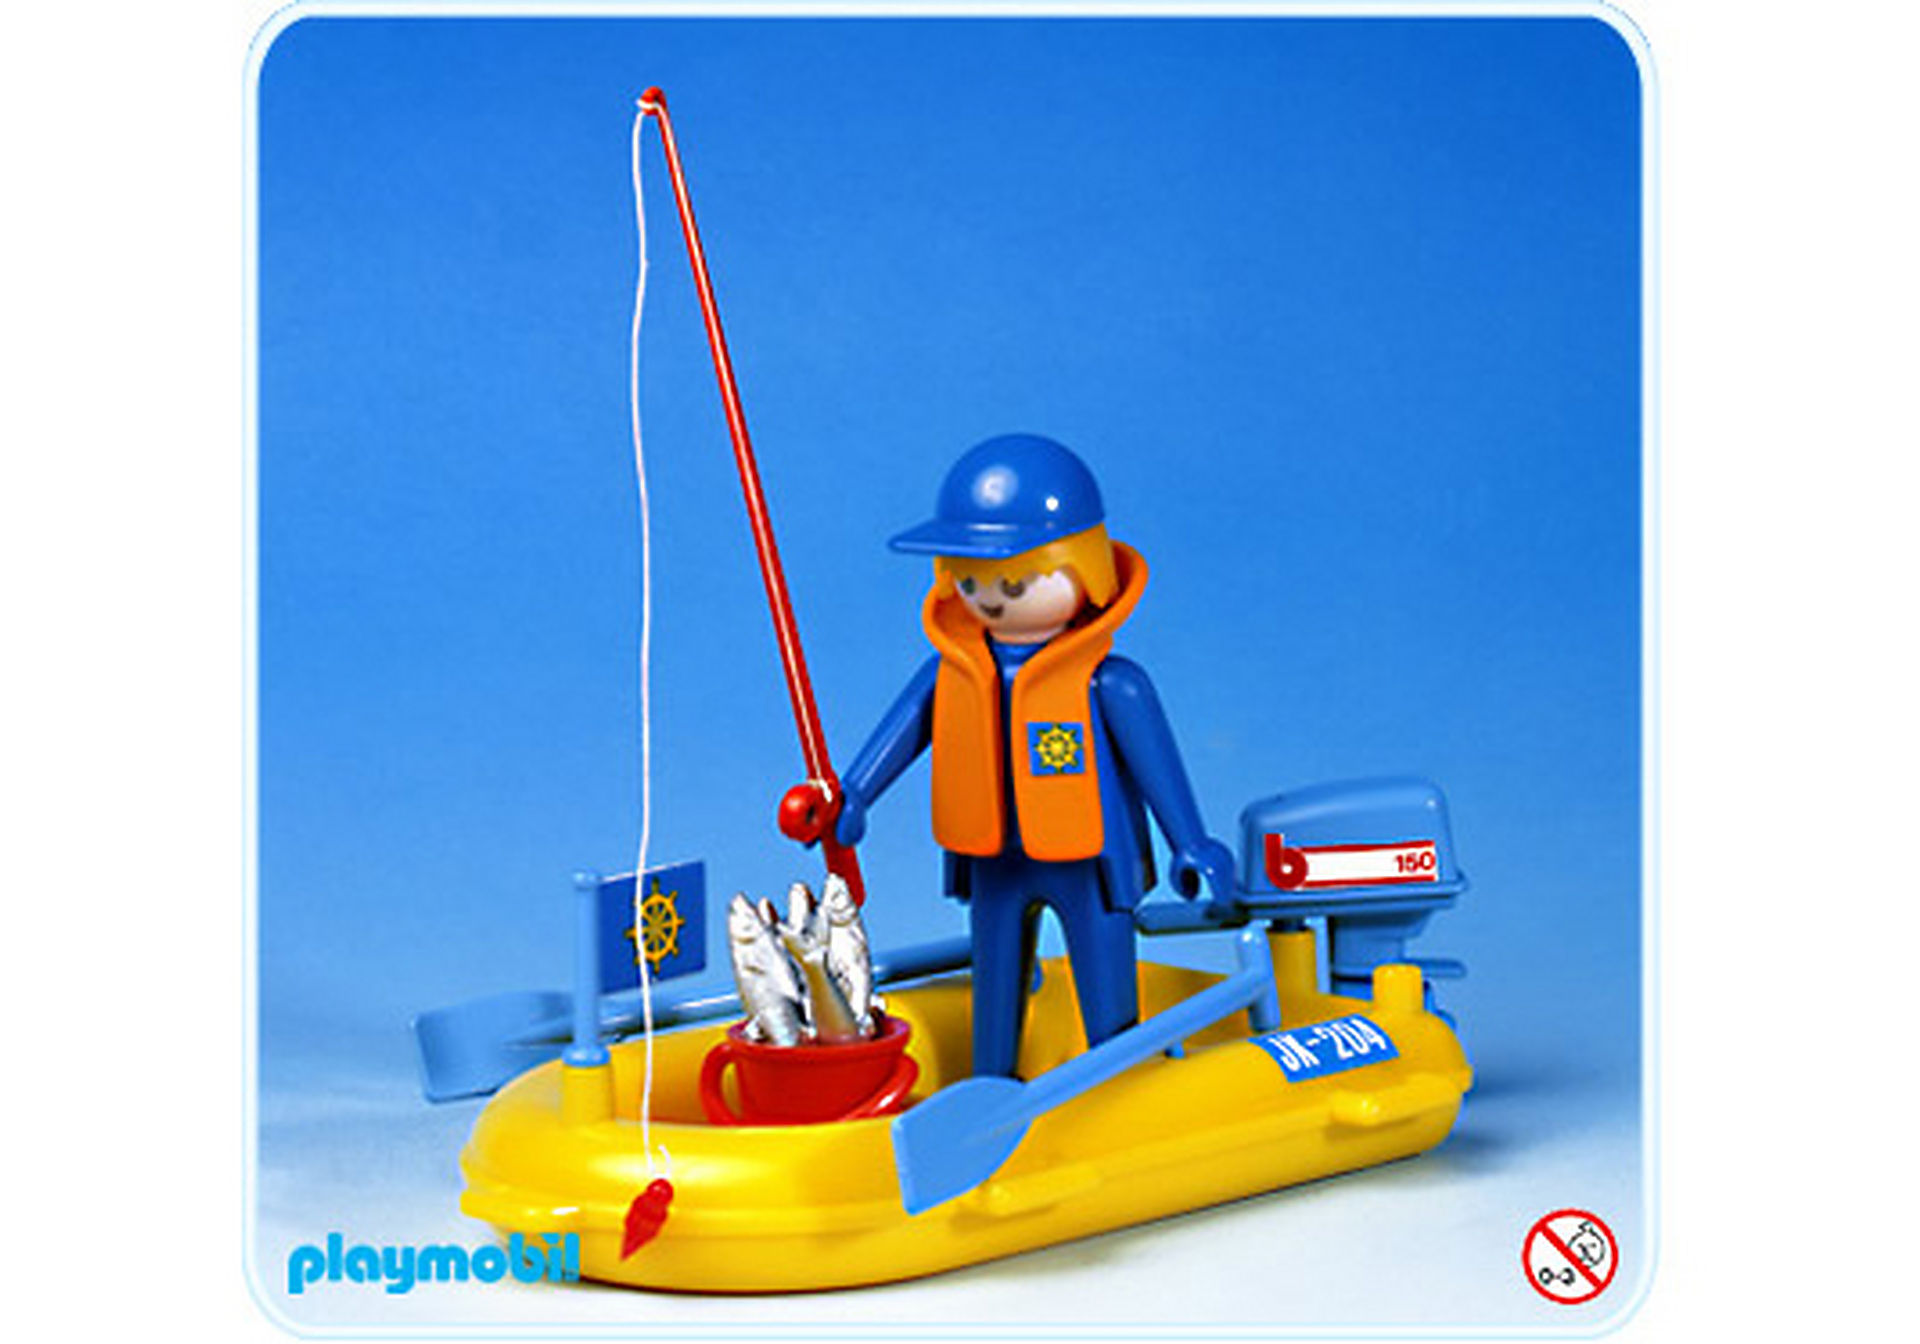 http://media.playmobil.com/i/playmobil/3574-A_product_detail/Angler/Schlauchboot